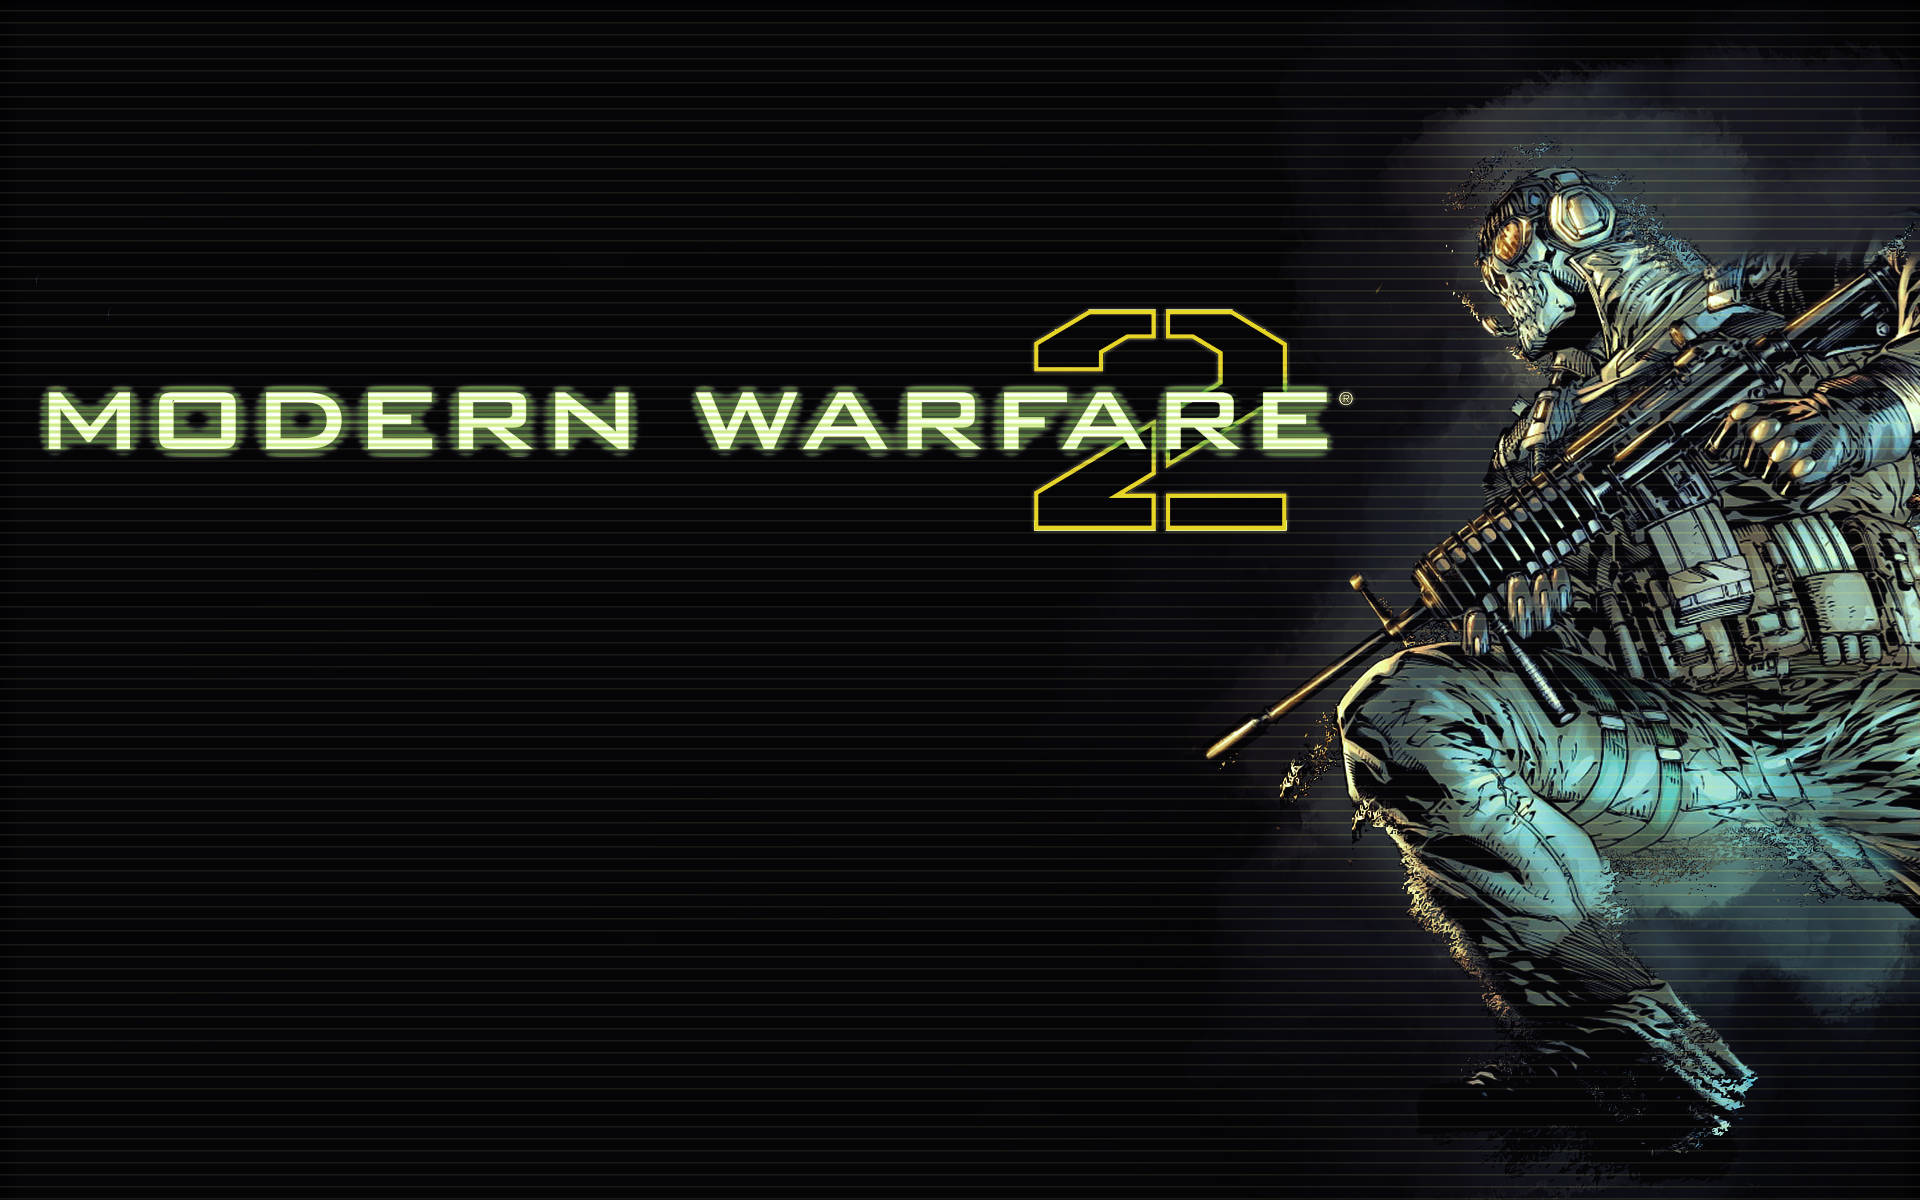 31 call of duty modern warfare 2 hd wallpapers for Cool modern wallpapers